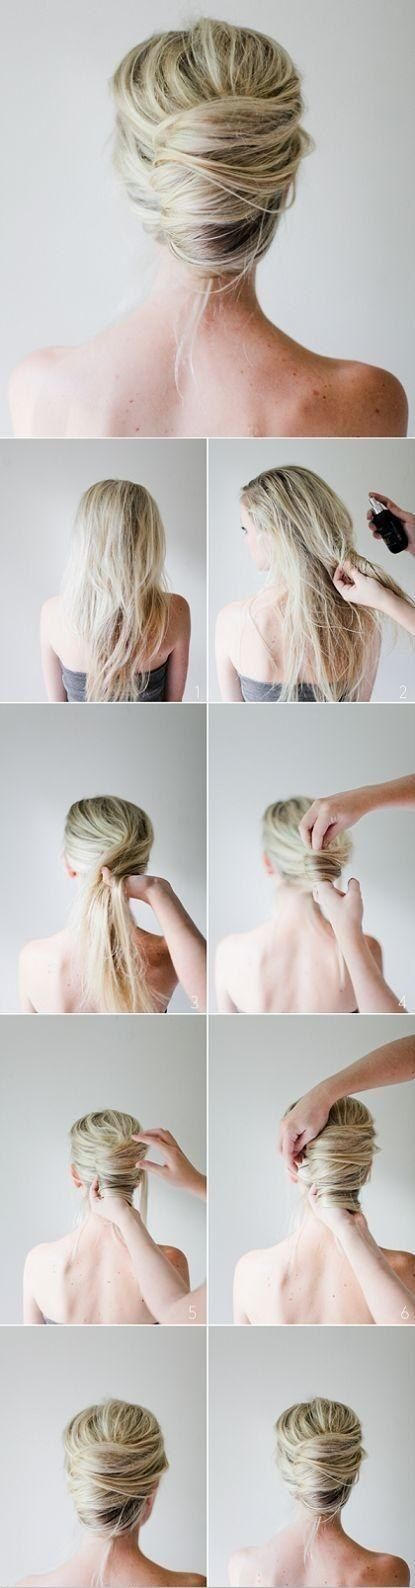 Unique 5 Minute Diy Brilliant Hairstyles To Save Your Time Hair Tutorial Hair Styles Long Hair Styles